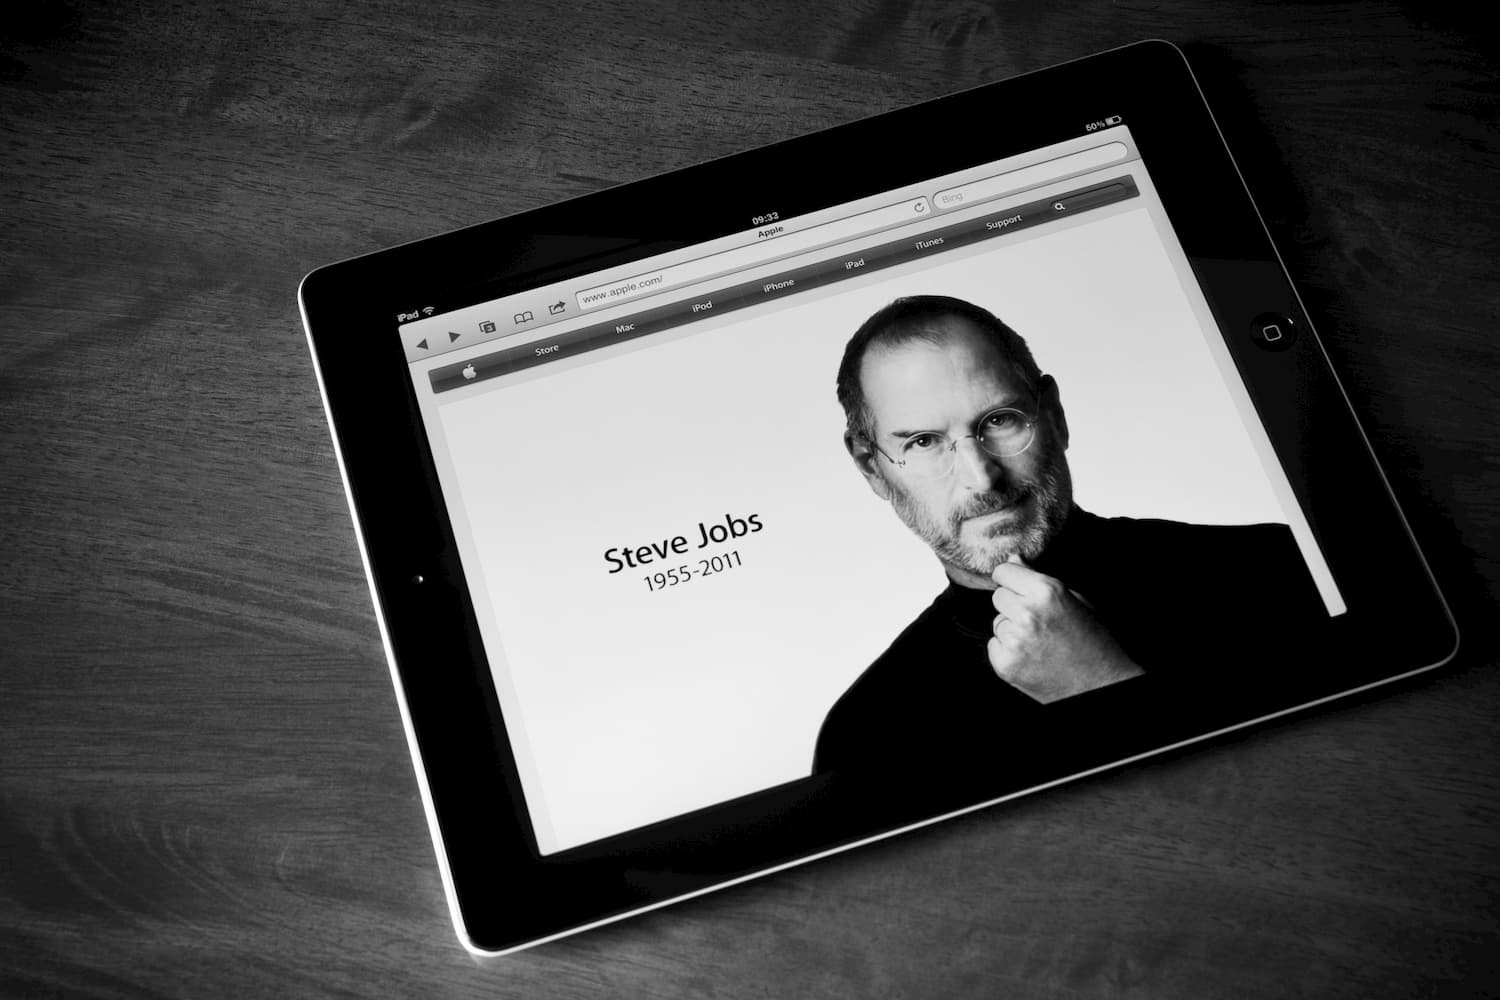 4 Apple Philosophies That Brought Its Remarkable Success